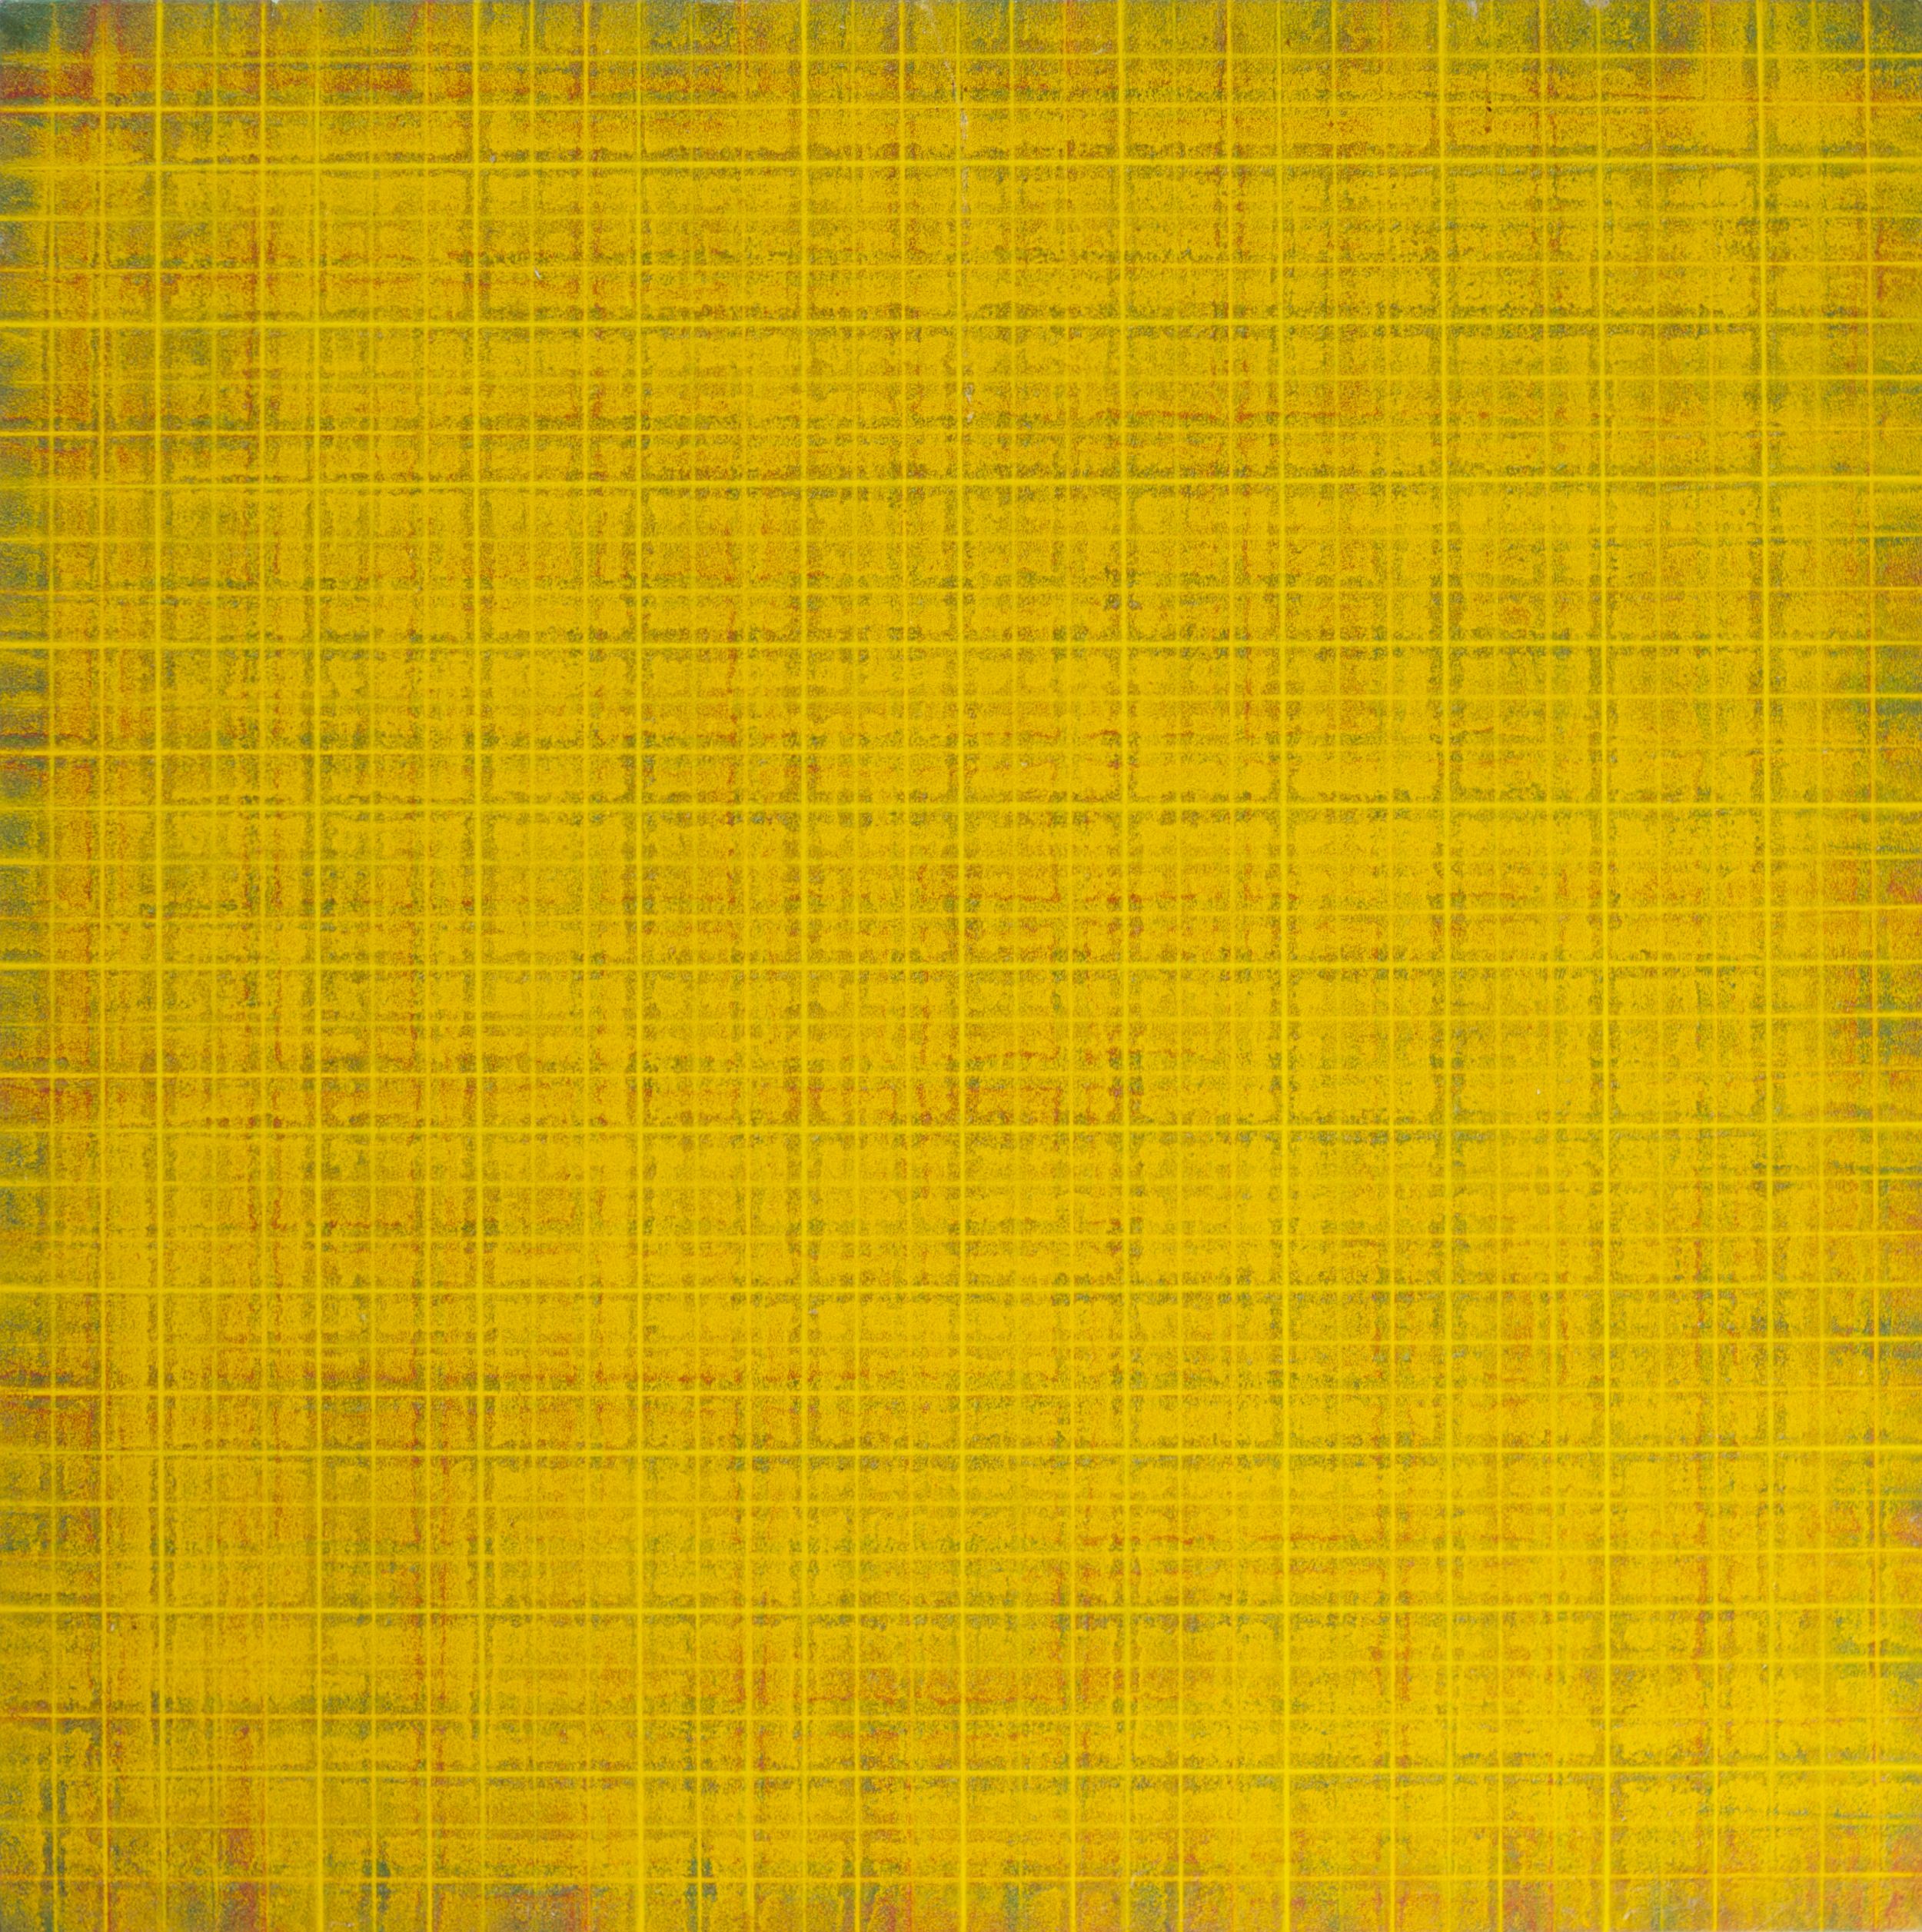 Untitled (Yellow, Red, Green)